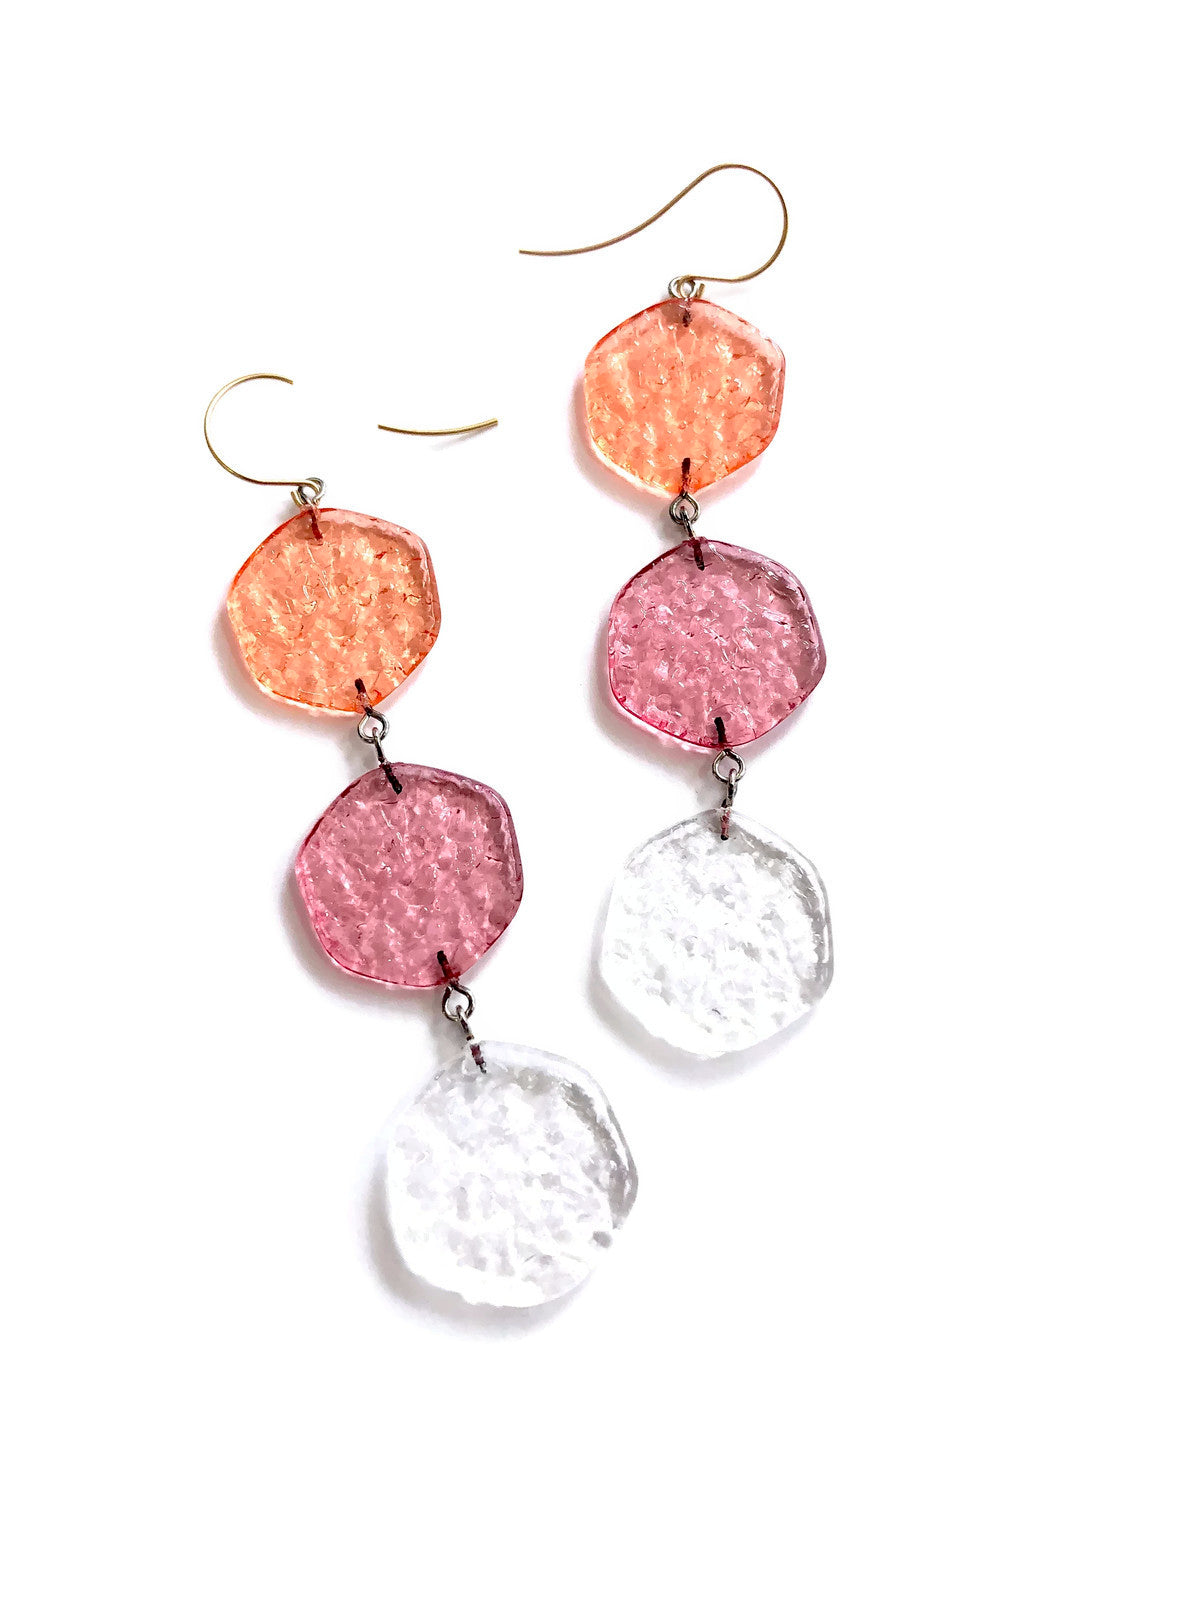 triple drop earrings fruite